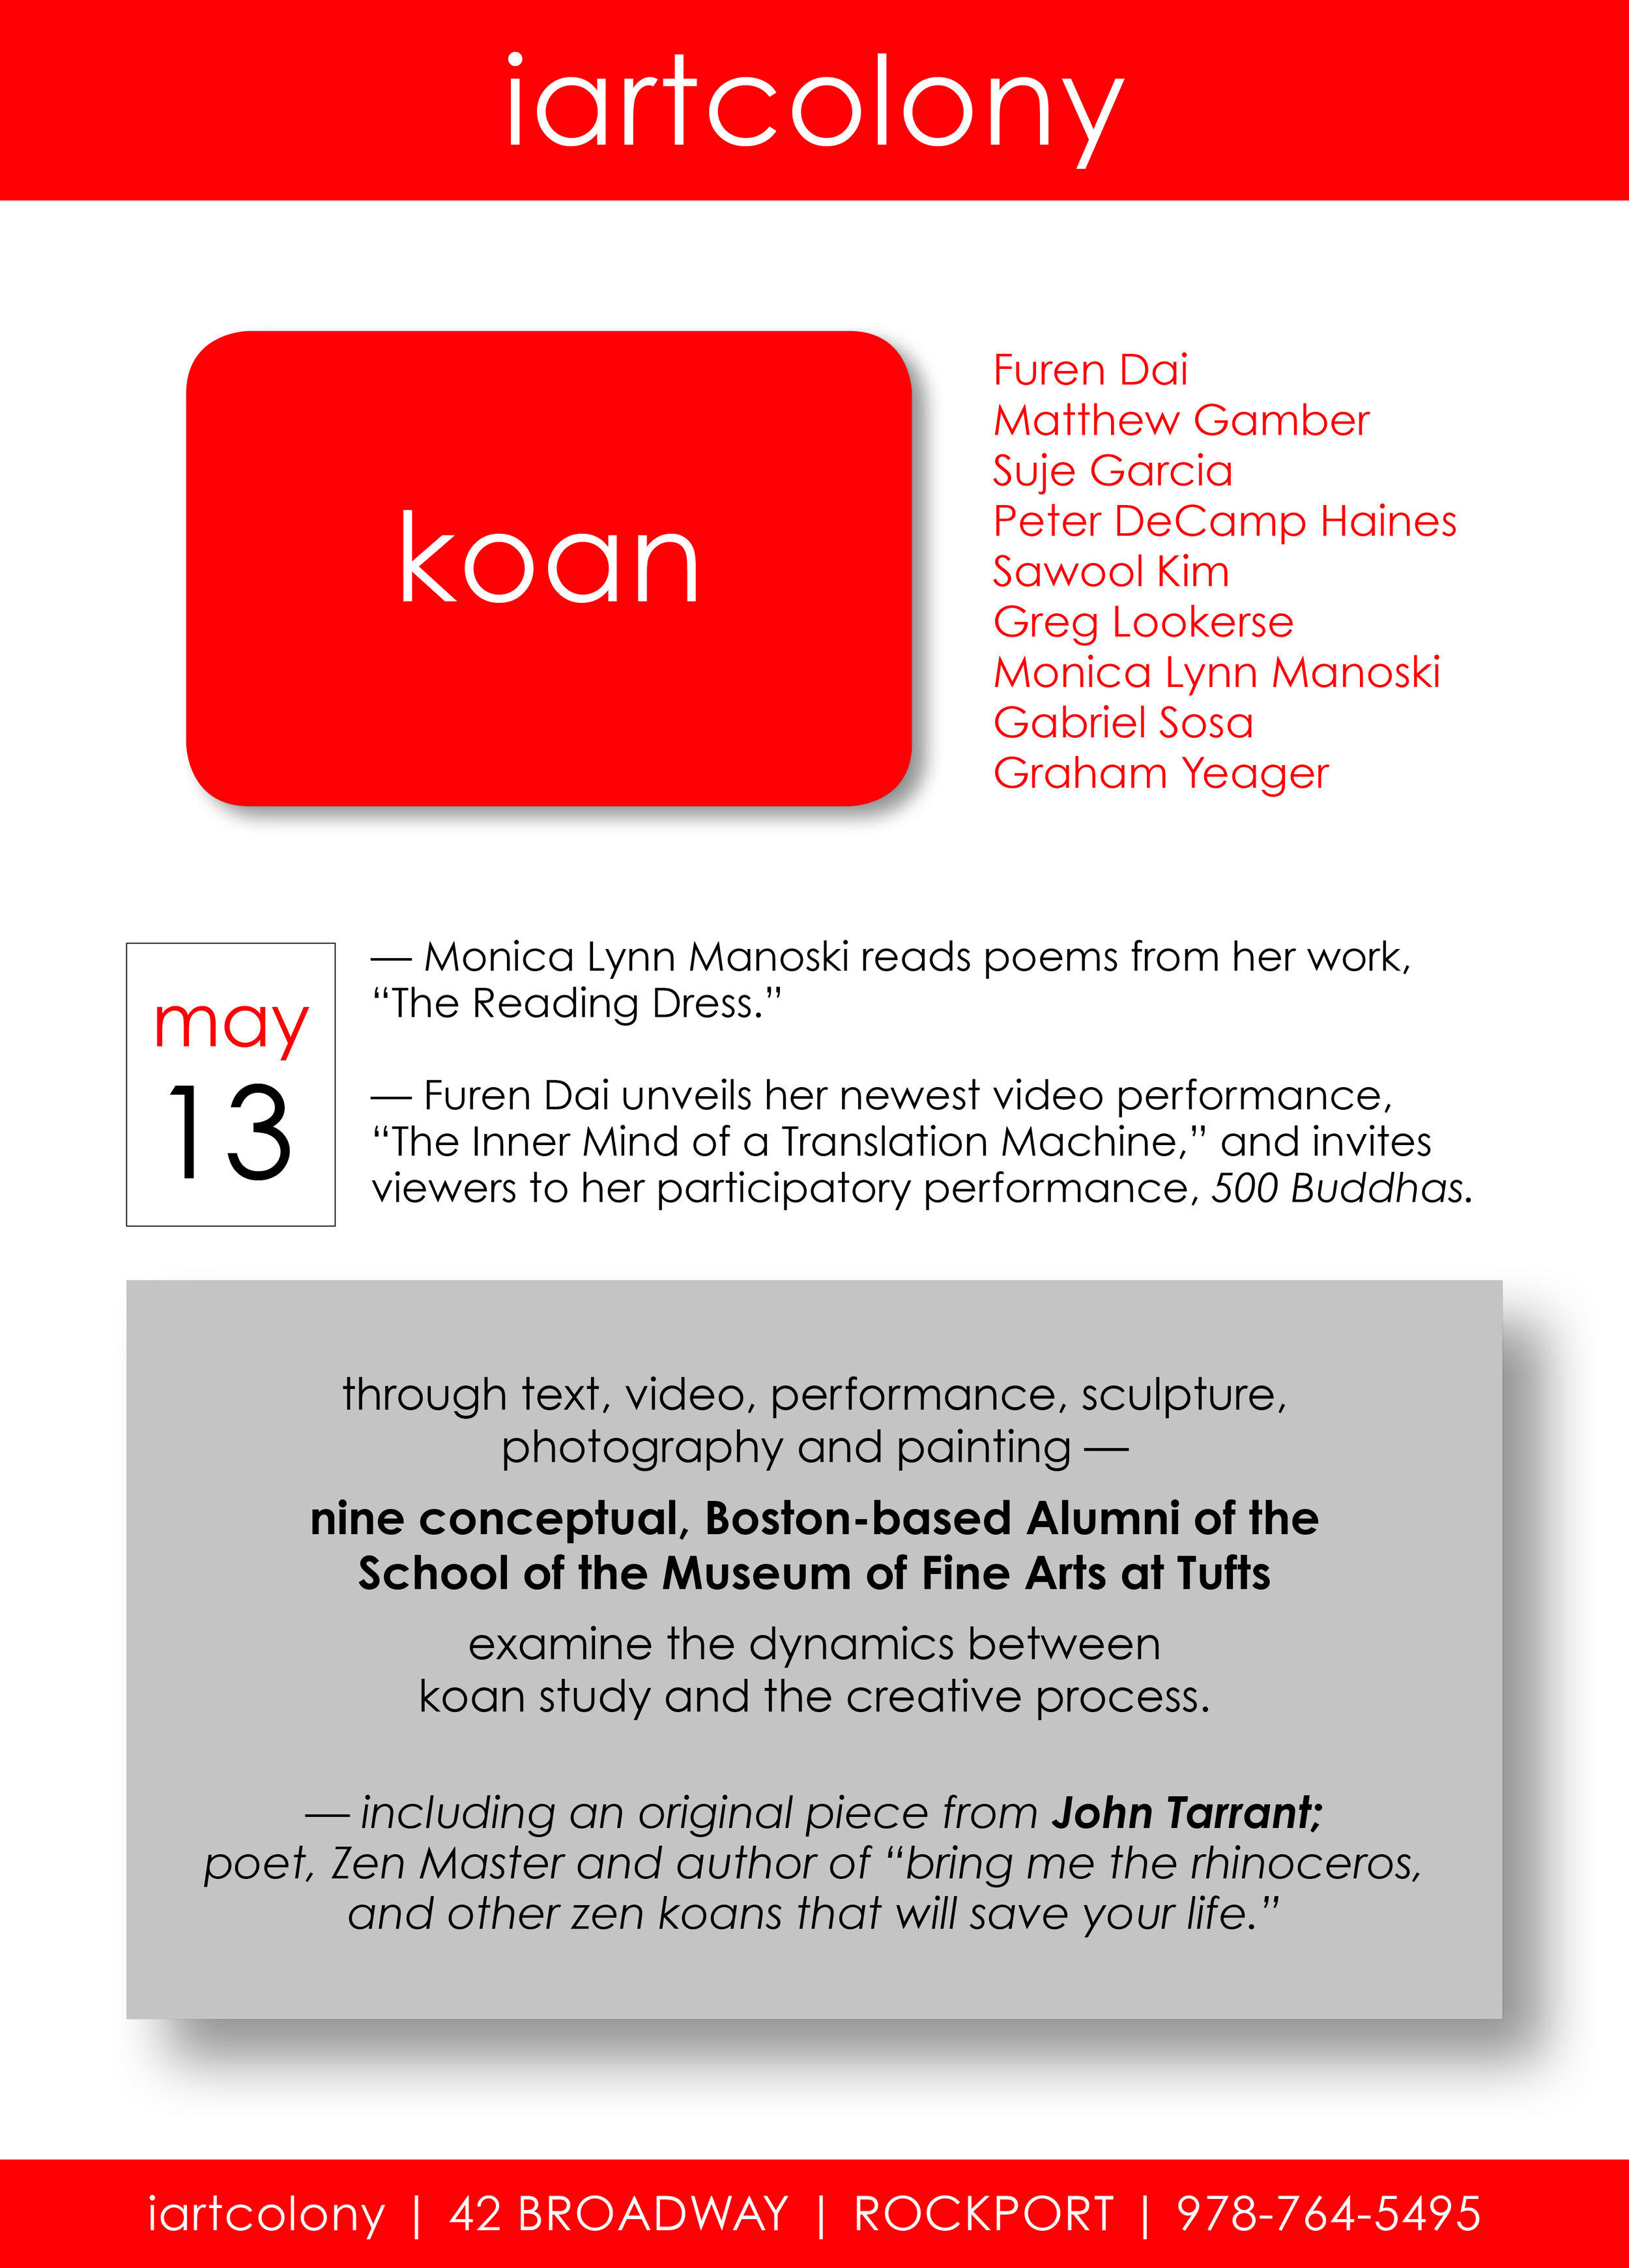 iartcolony - koan - paperless post invitation 2019.jpg